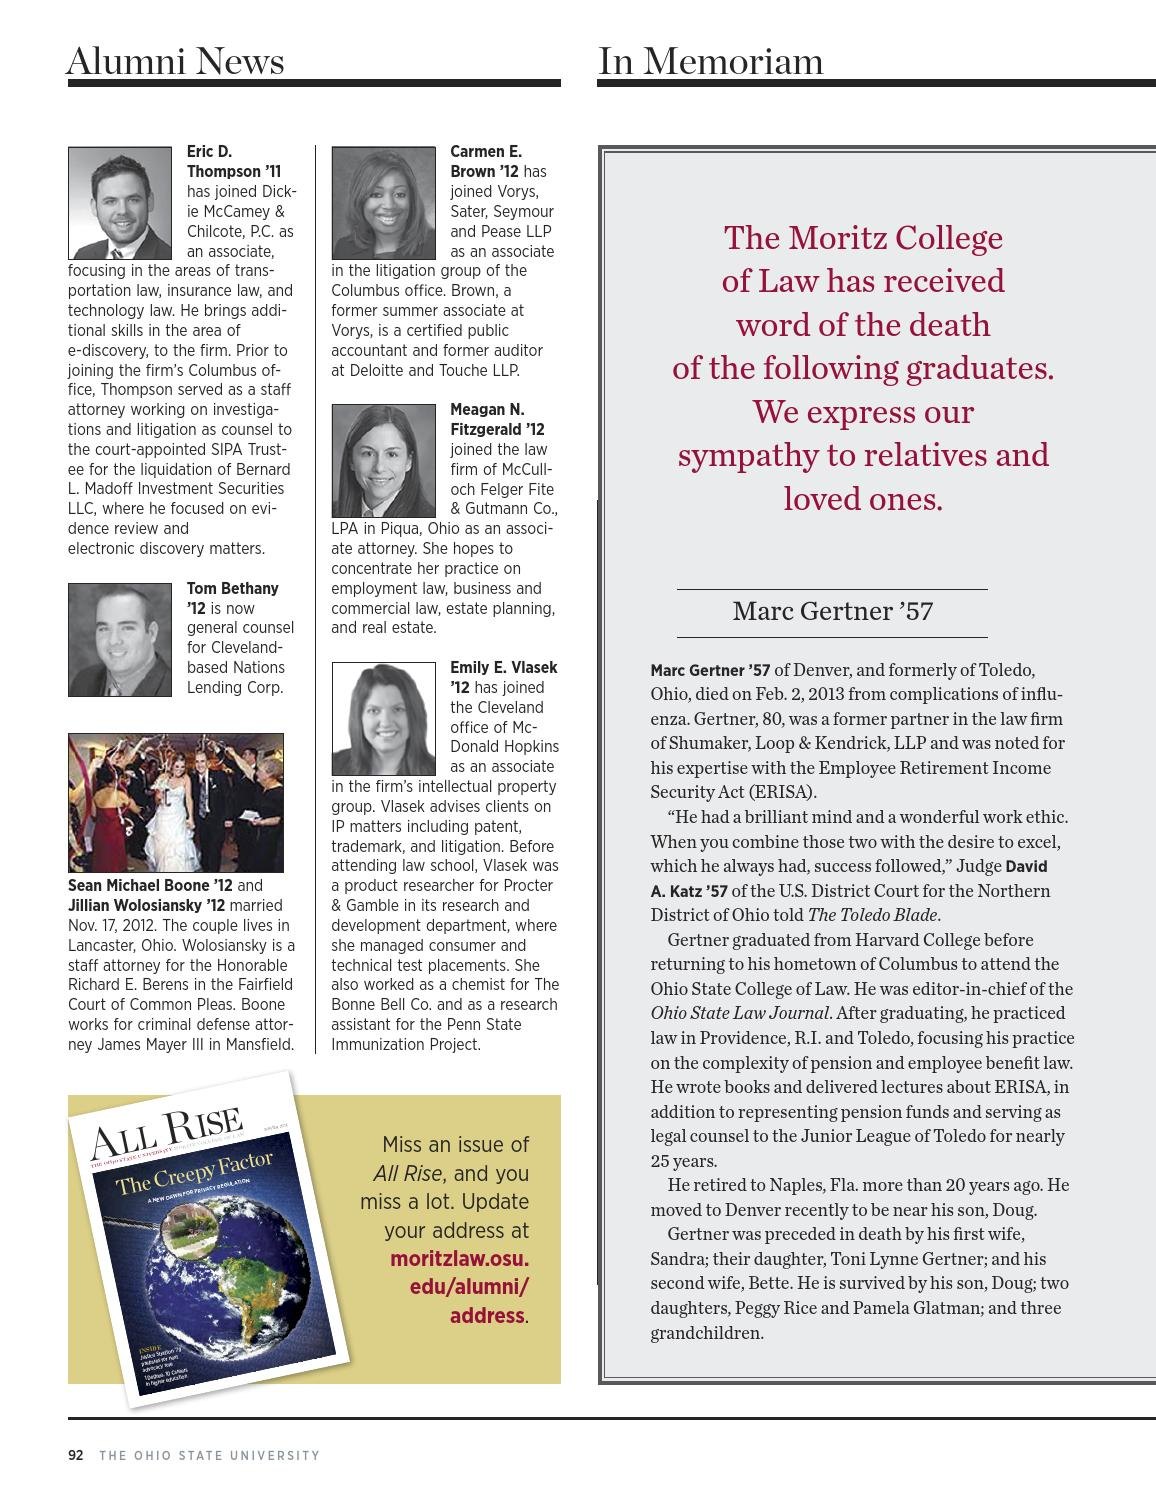 All Rise Summer 2013 By Moritz College Of Law Issuu